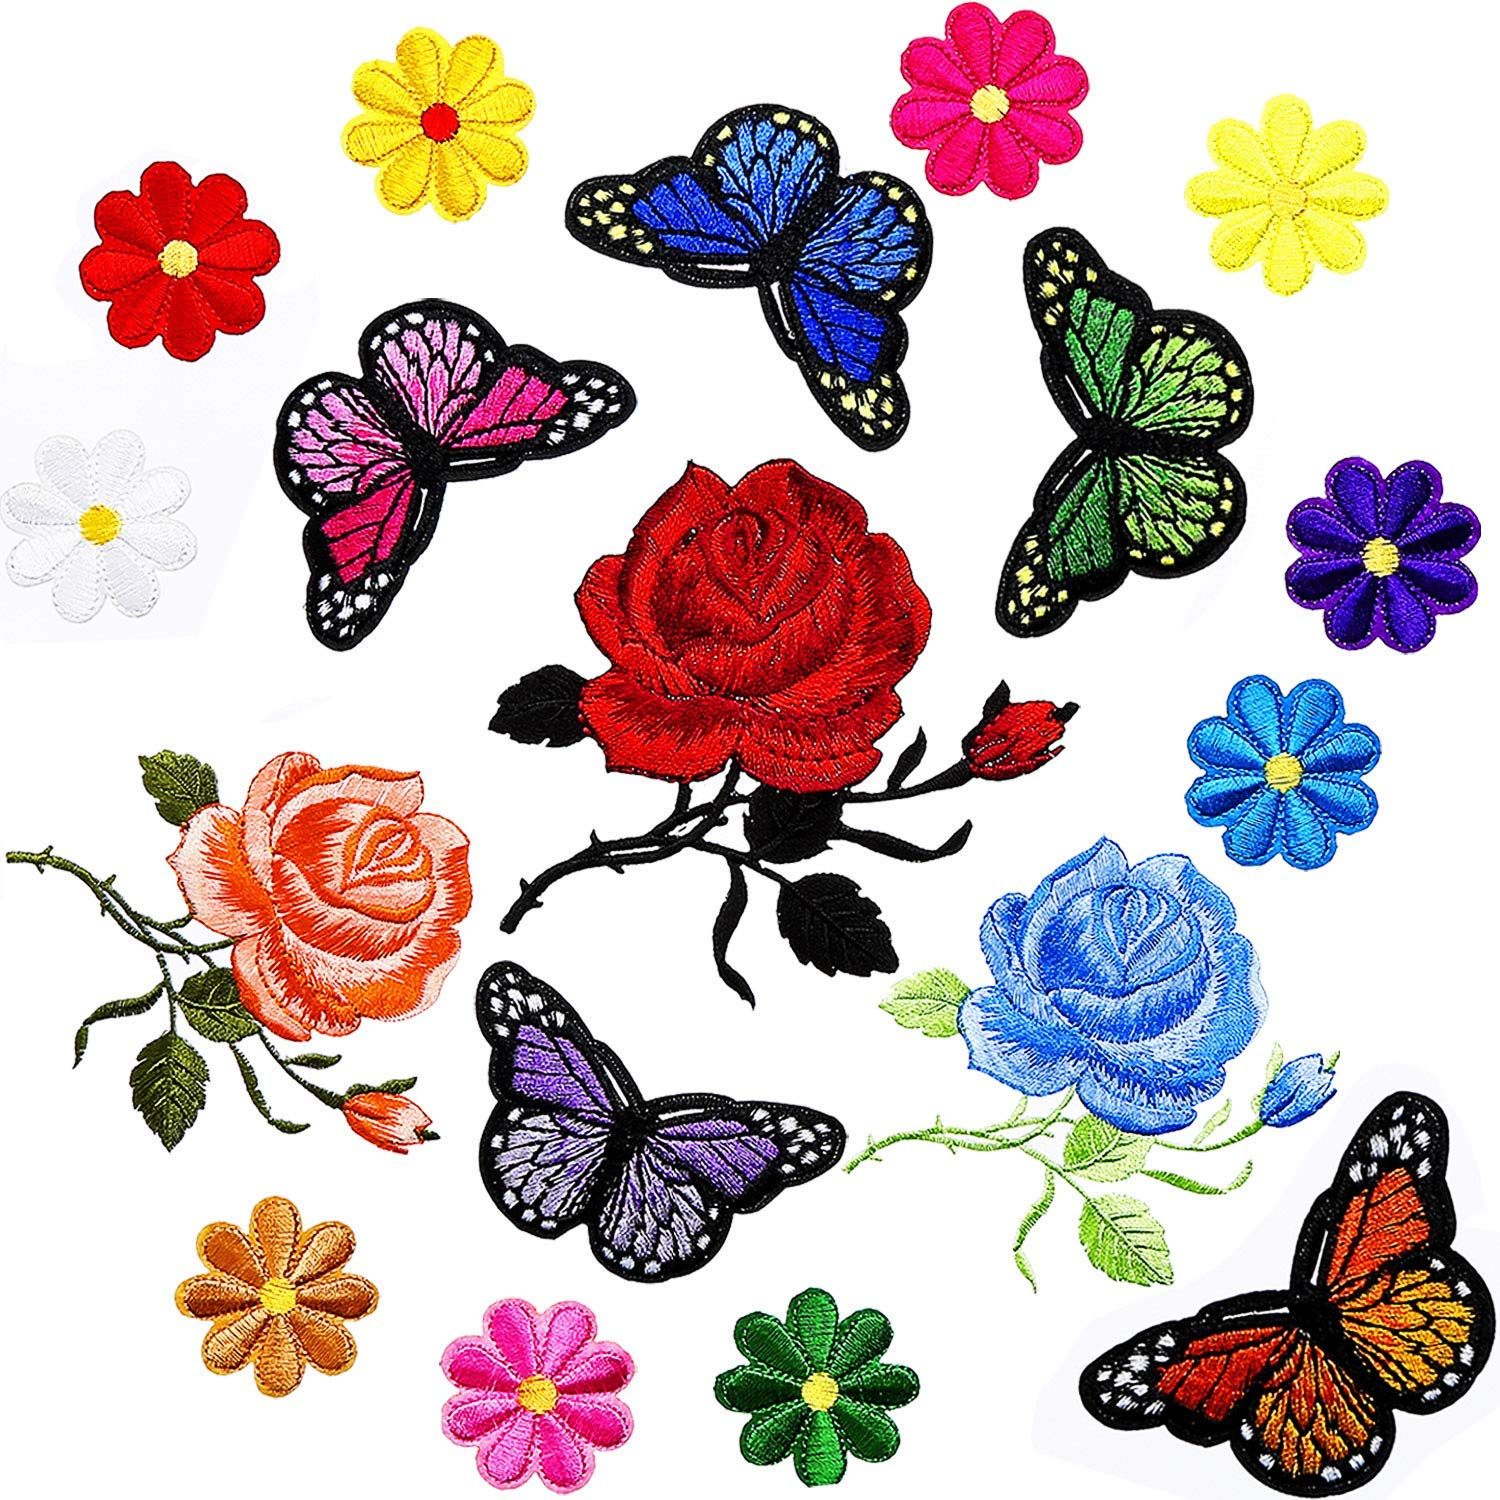 SATINIOR 20 Pieces Embroidery Applique Patches Rose Butterfly Flowers Pattern Iron on Patches for Jeans Jackets Clothing Scrapbooking Art Craft